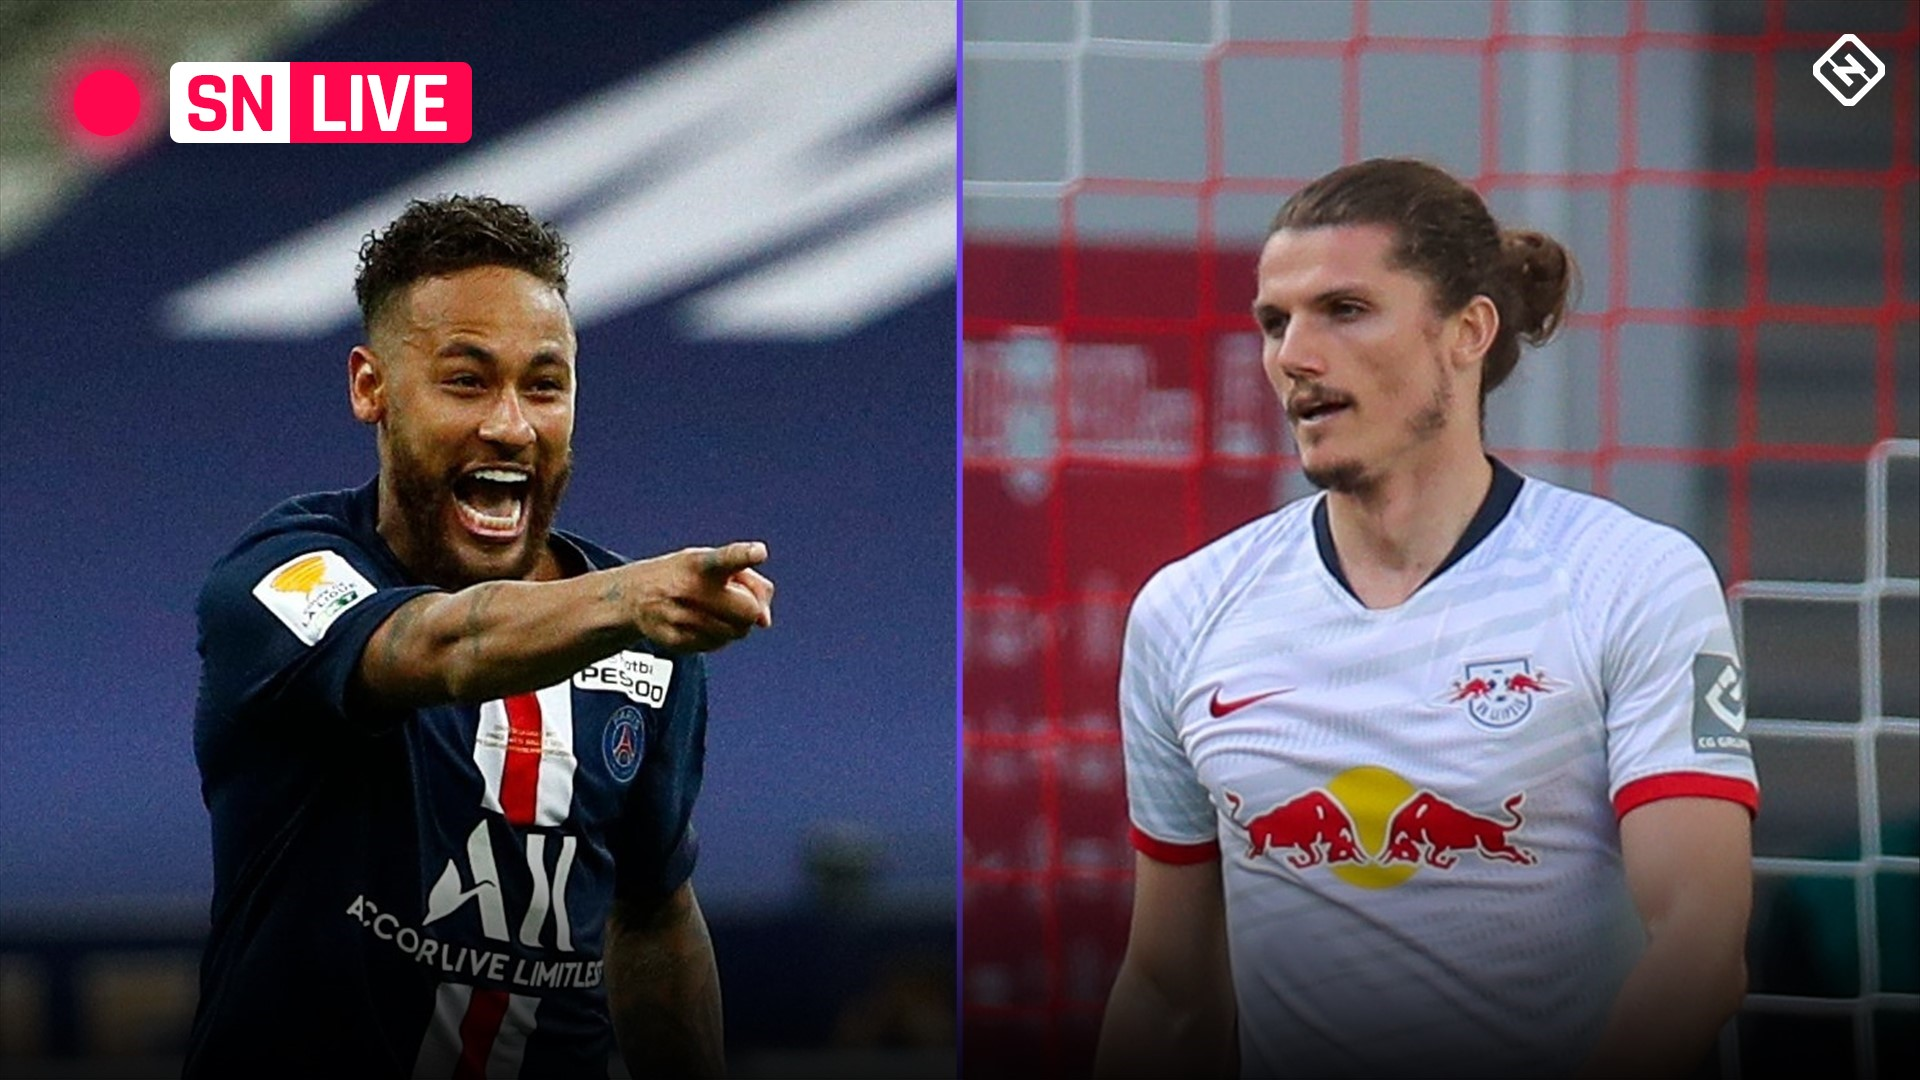 Halloween Leipzig 2020 Please Seat Yourself PSG vs. RB Leipzig live score, updates, highlights from 2020